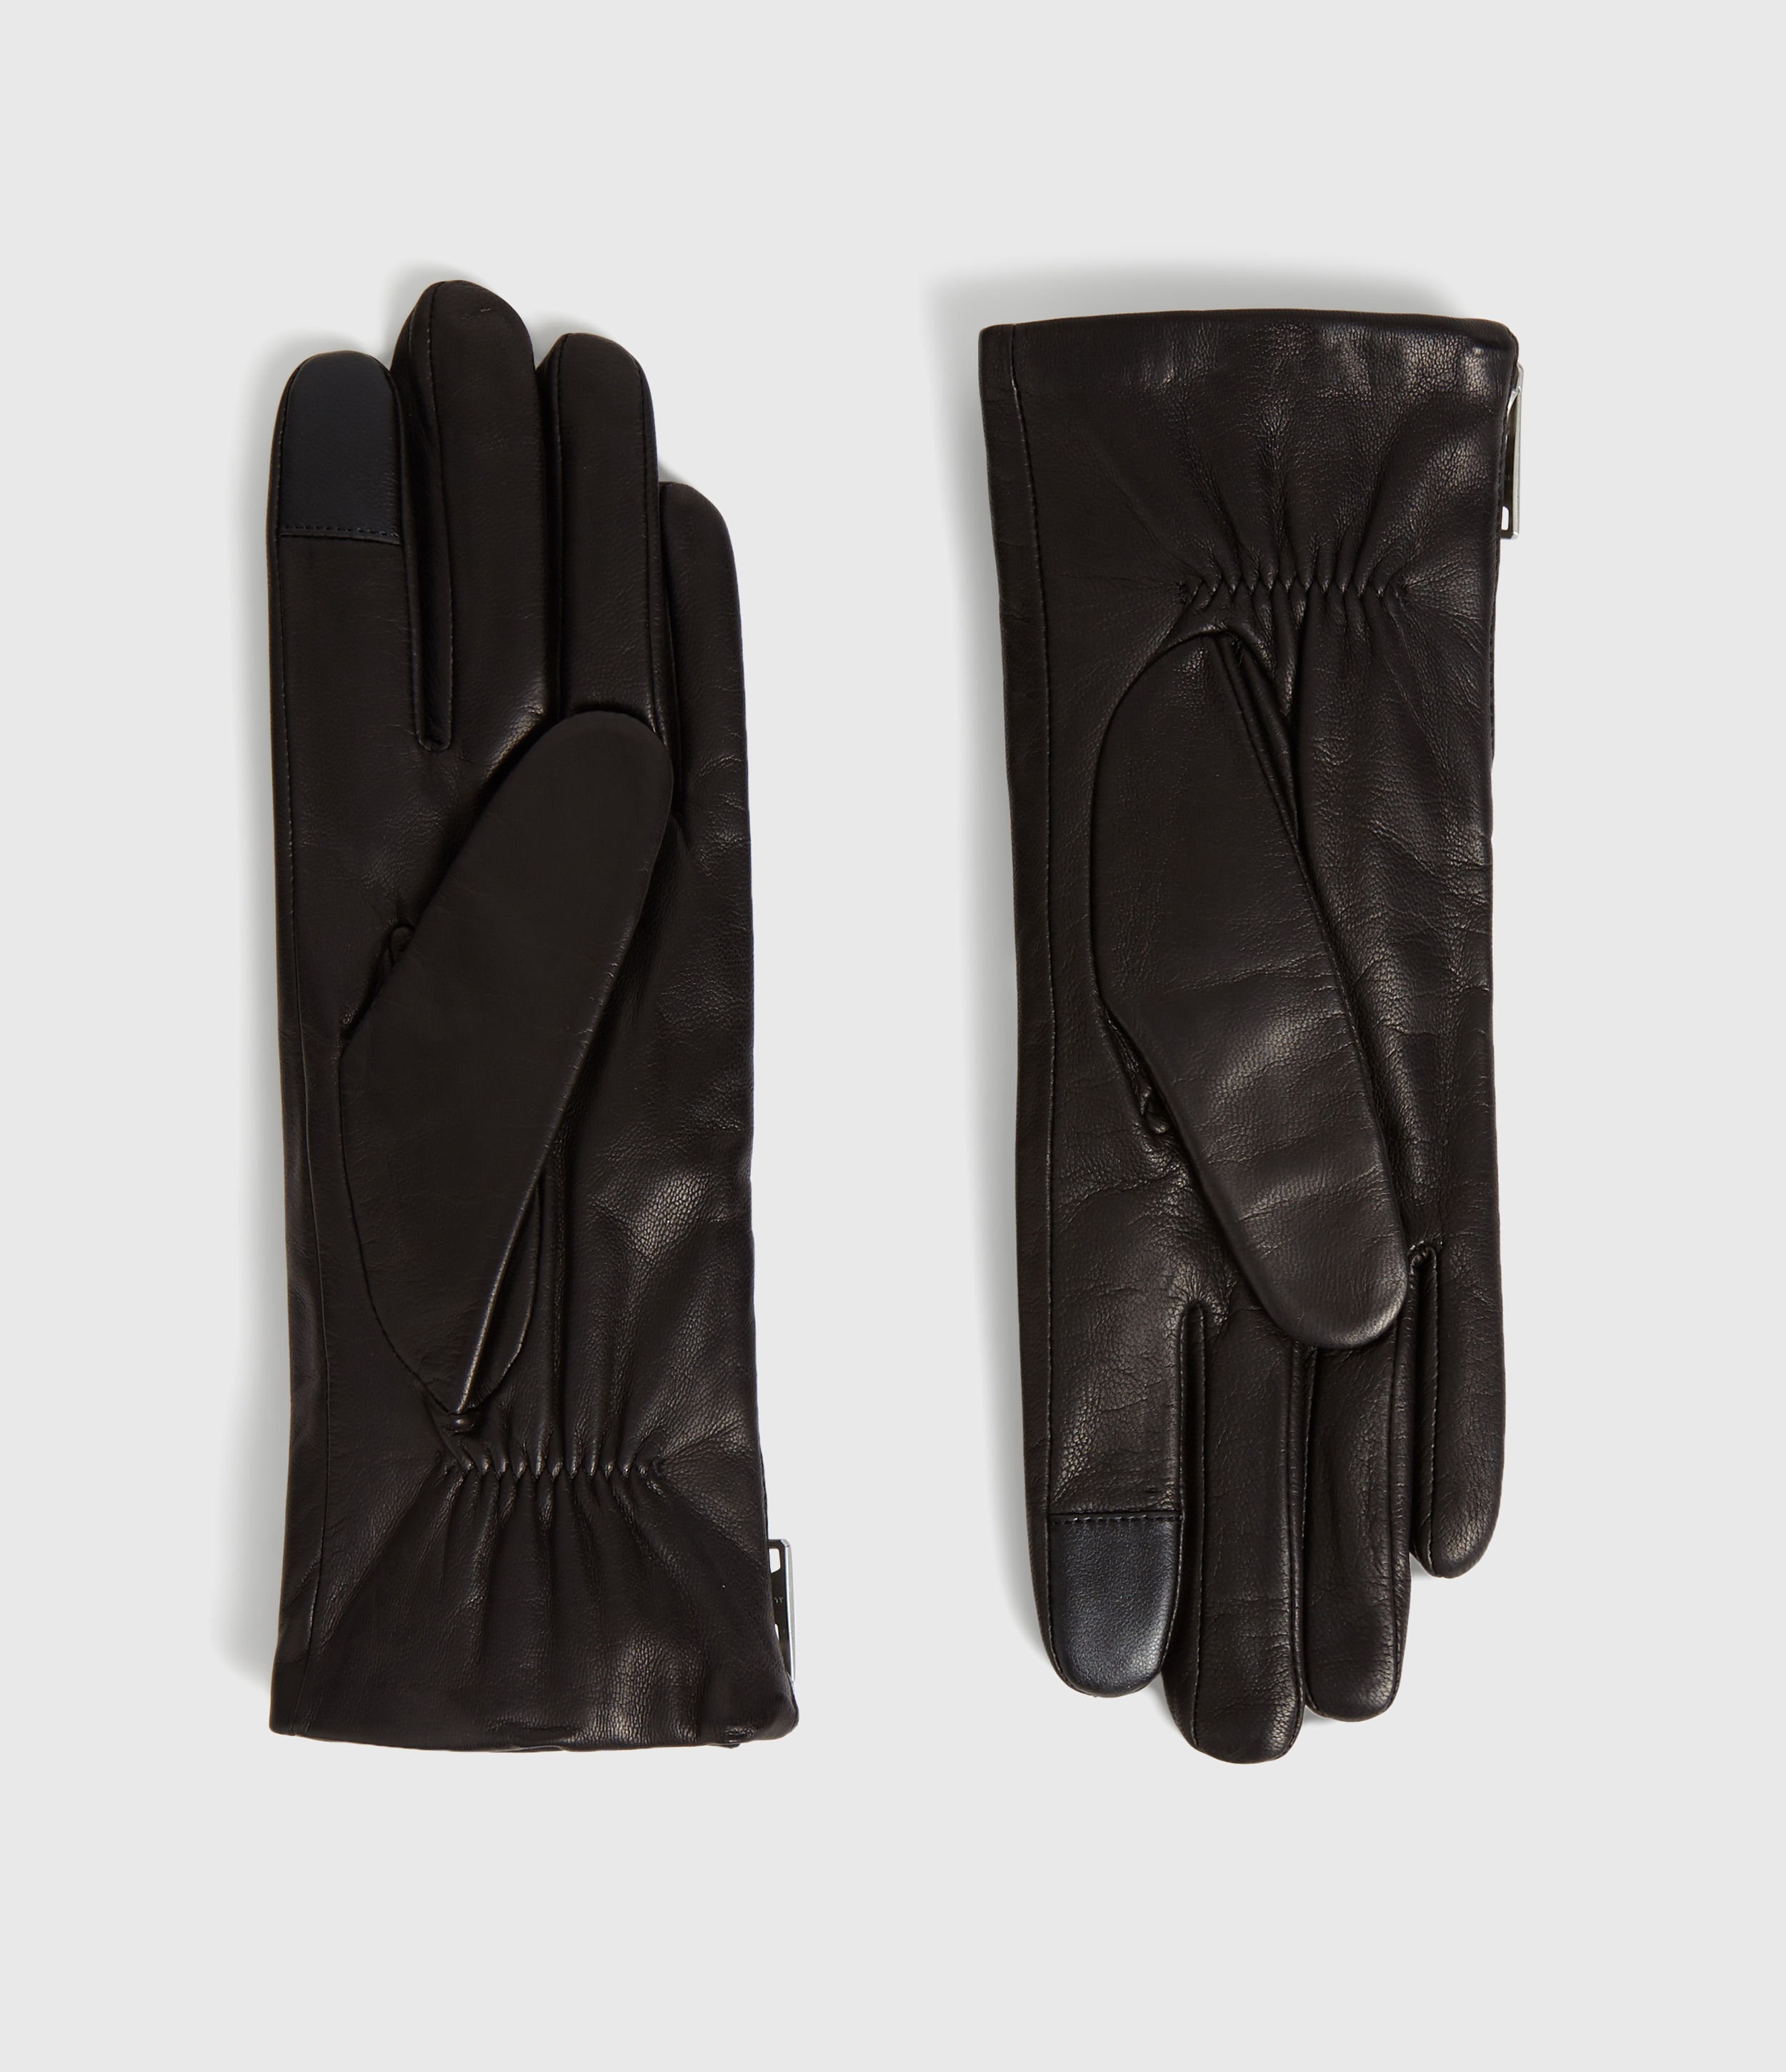 AllSaints Women's Leather Classic Zipper Touch Gloves, Black, Size: L